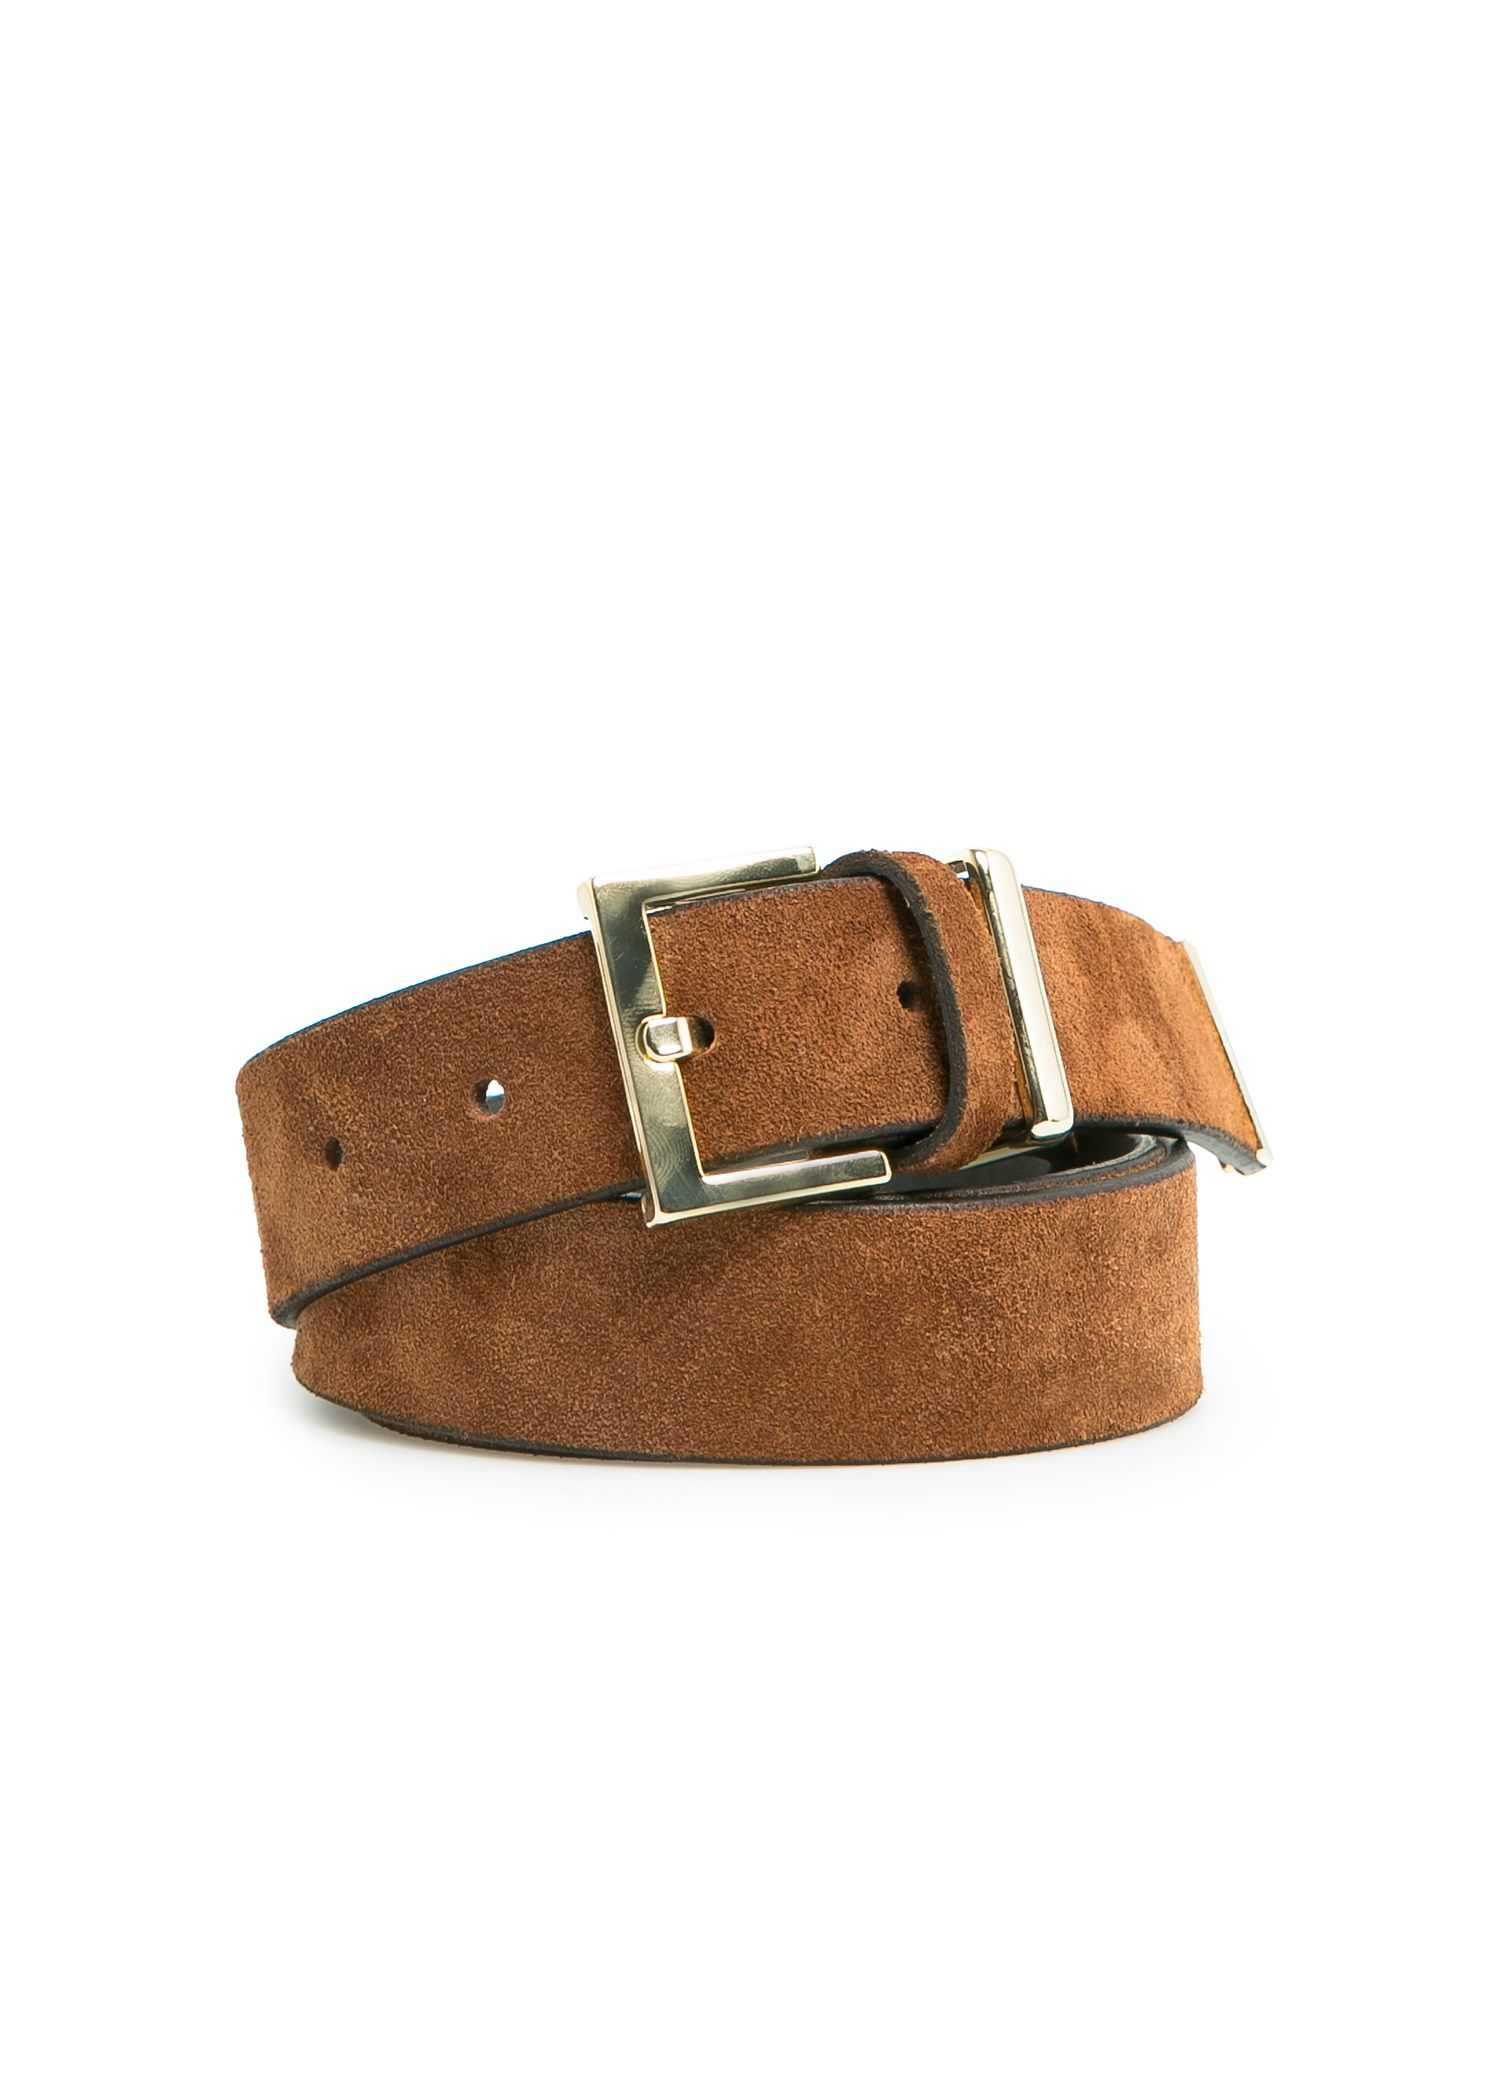 Suede belt - Belts for Women | MANGO